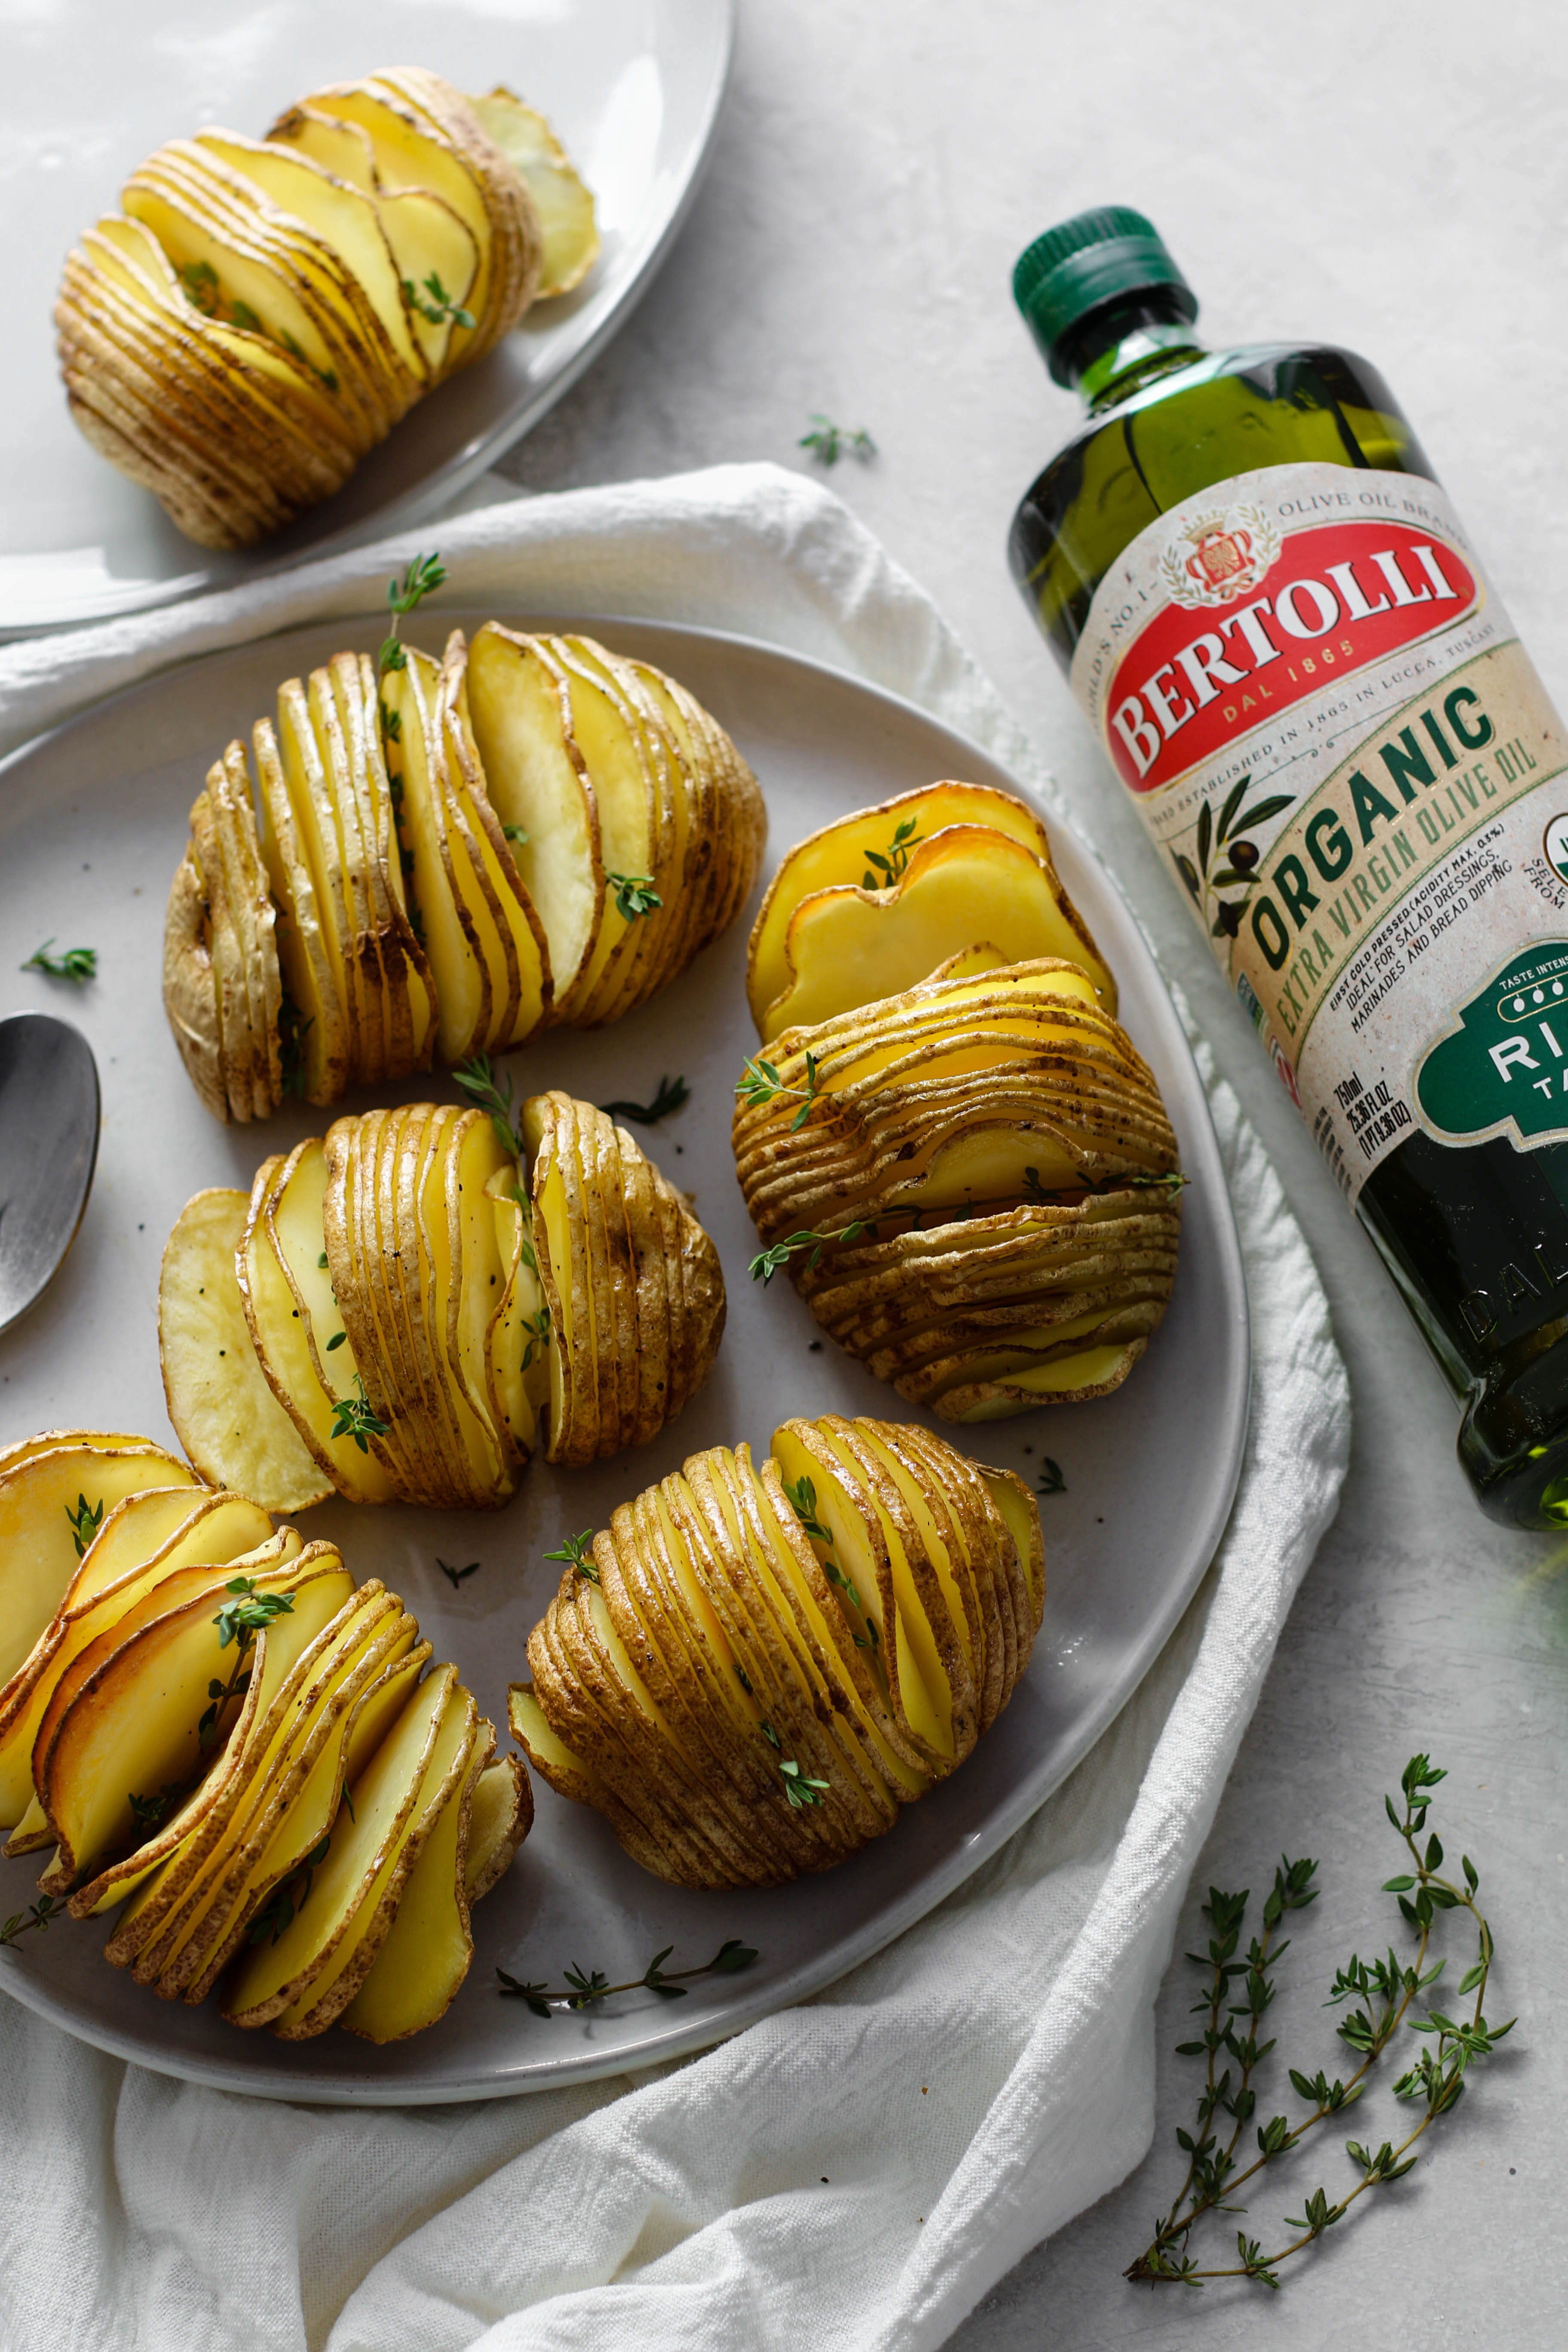 HASSELBACK RUSSET POTATOES with Olive Oil